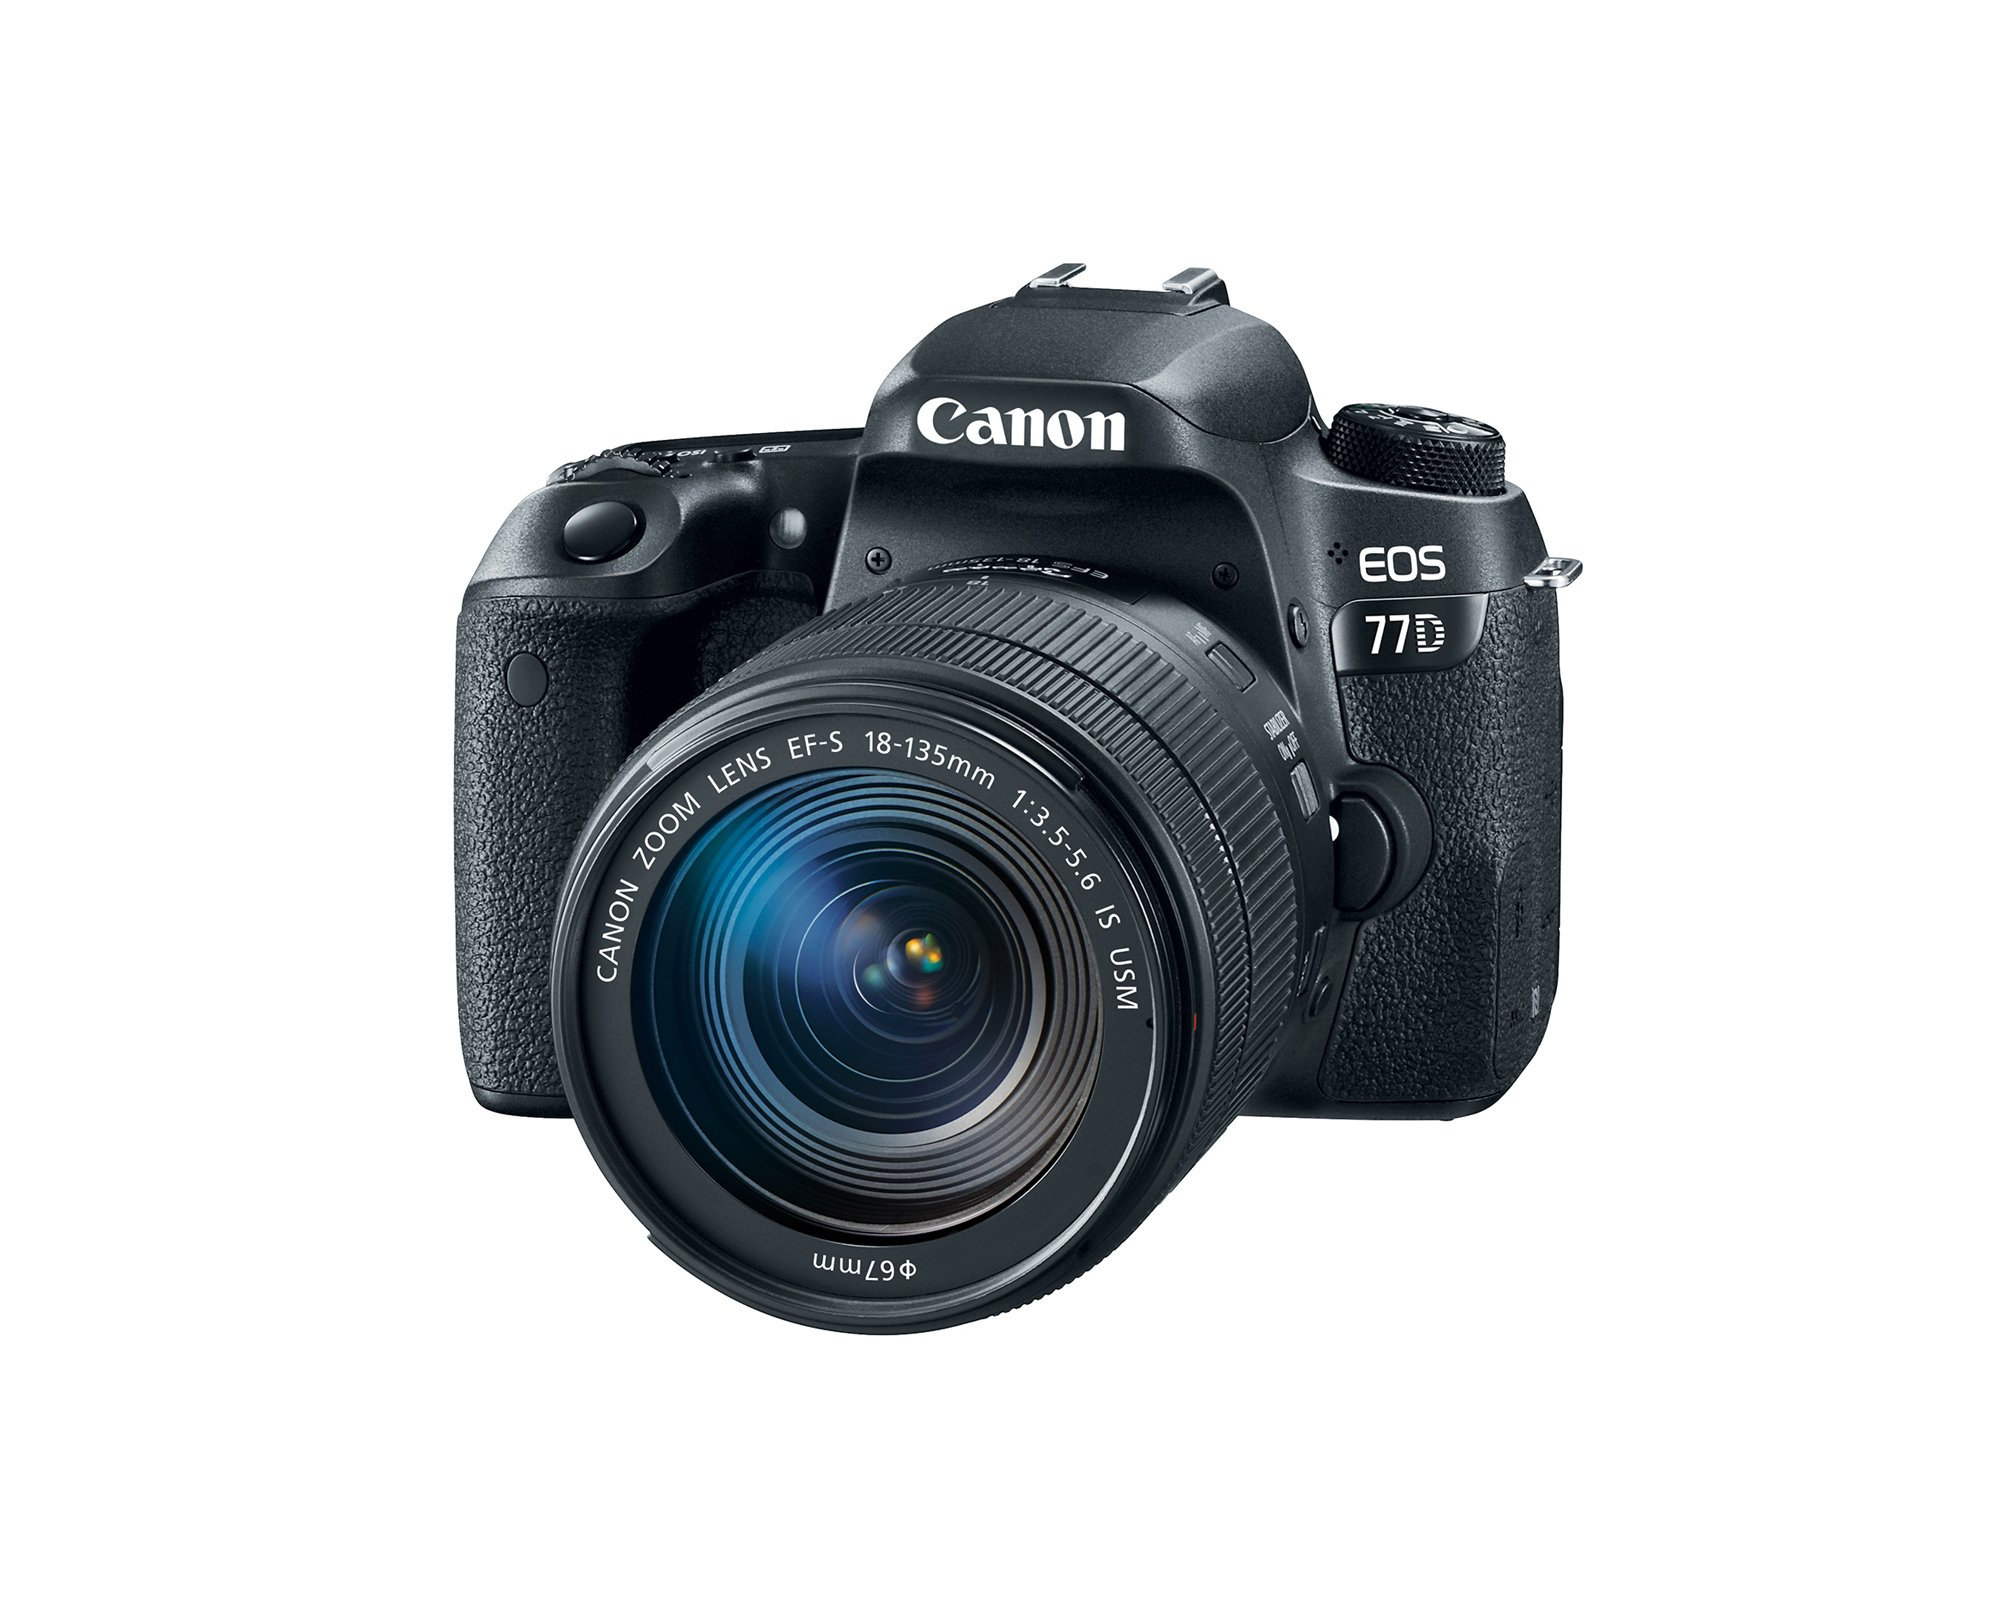 Canon EOS 77D EF-S 18-135mm SI USM Kit Instant Rebate